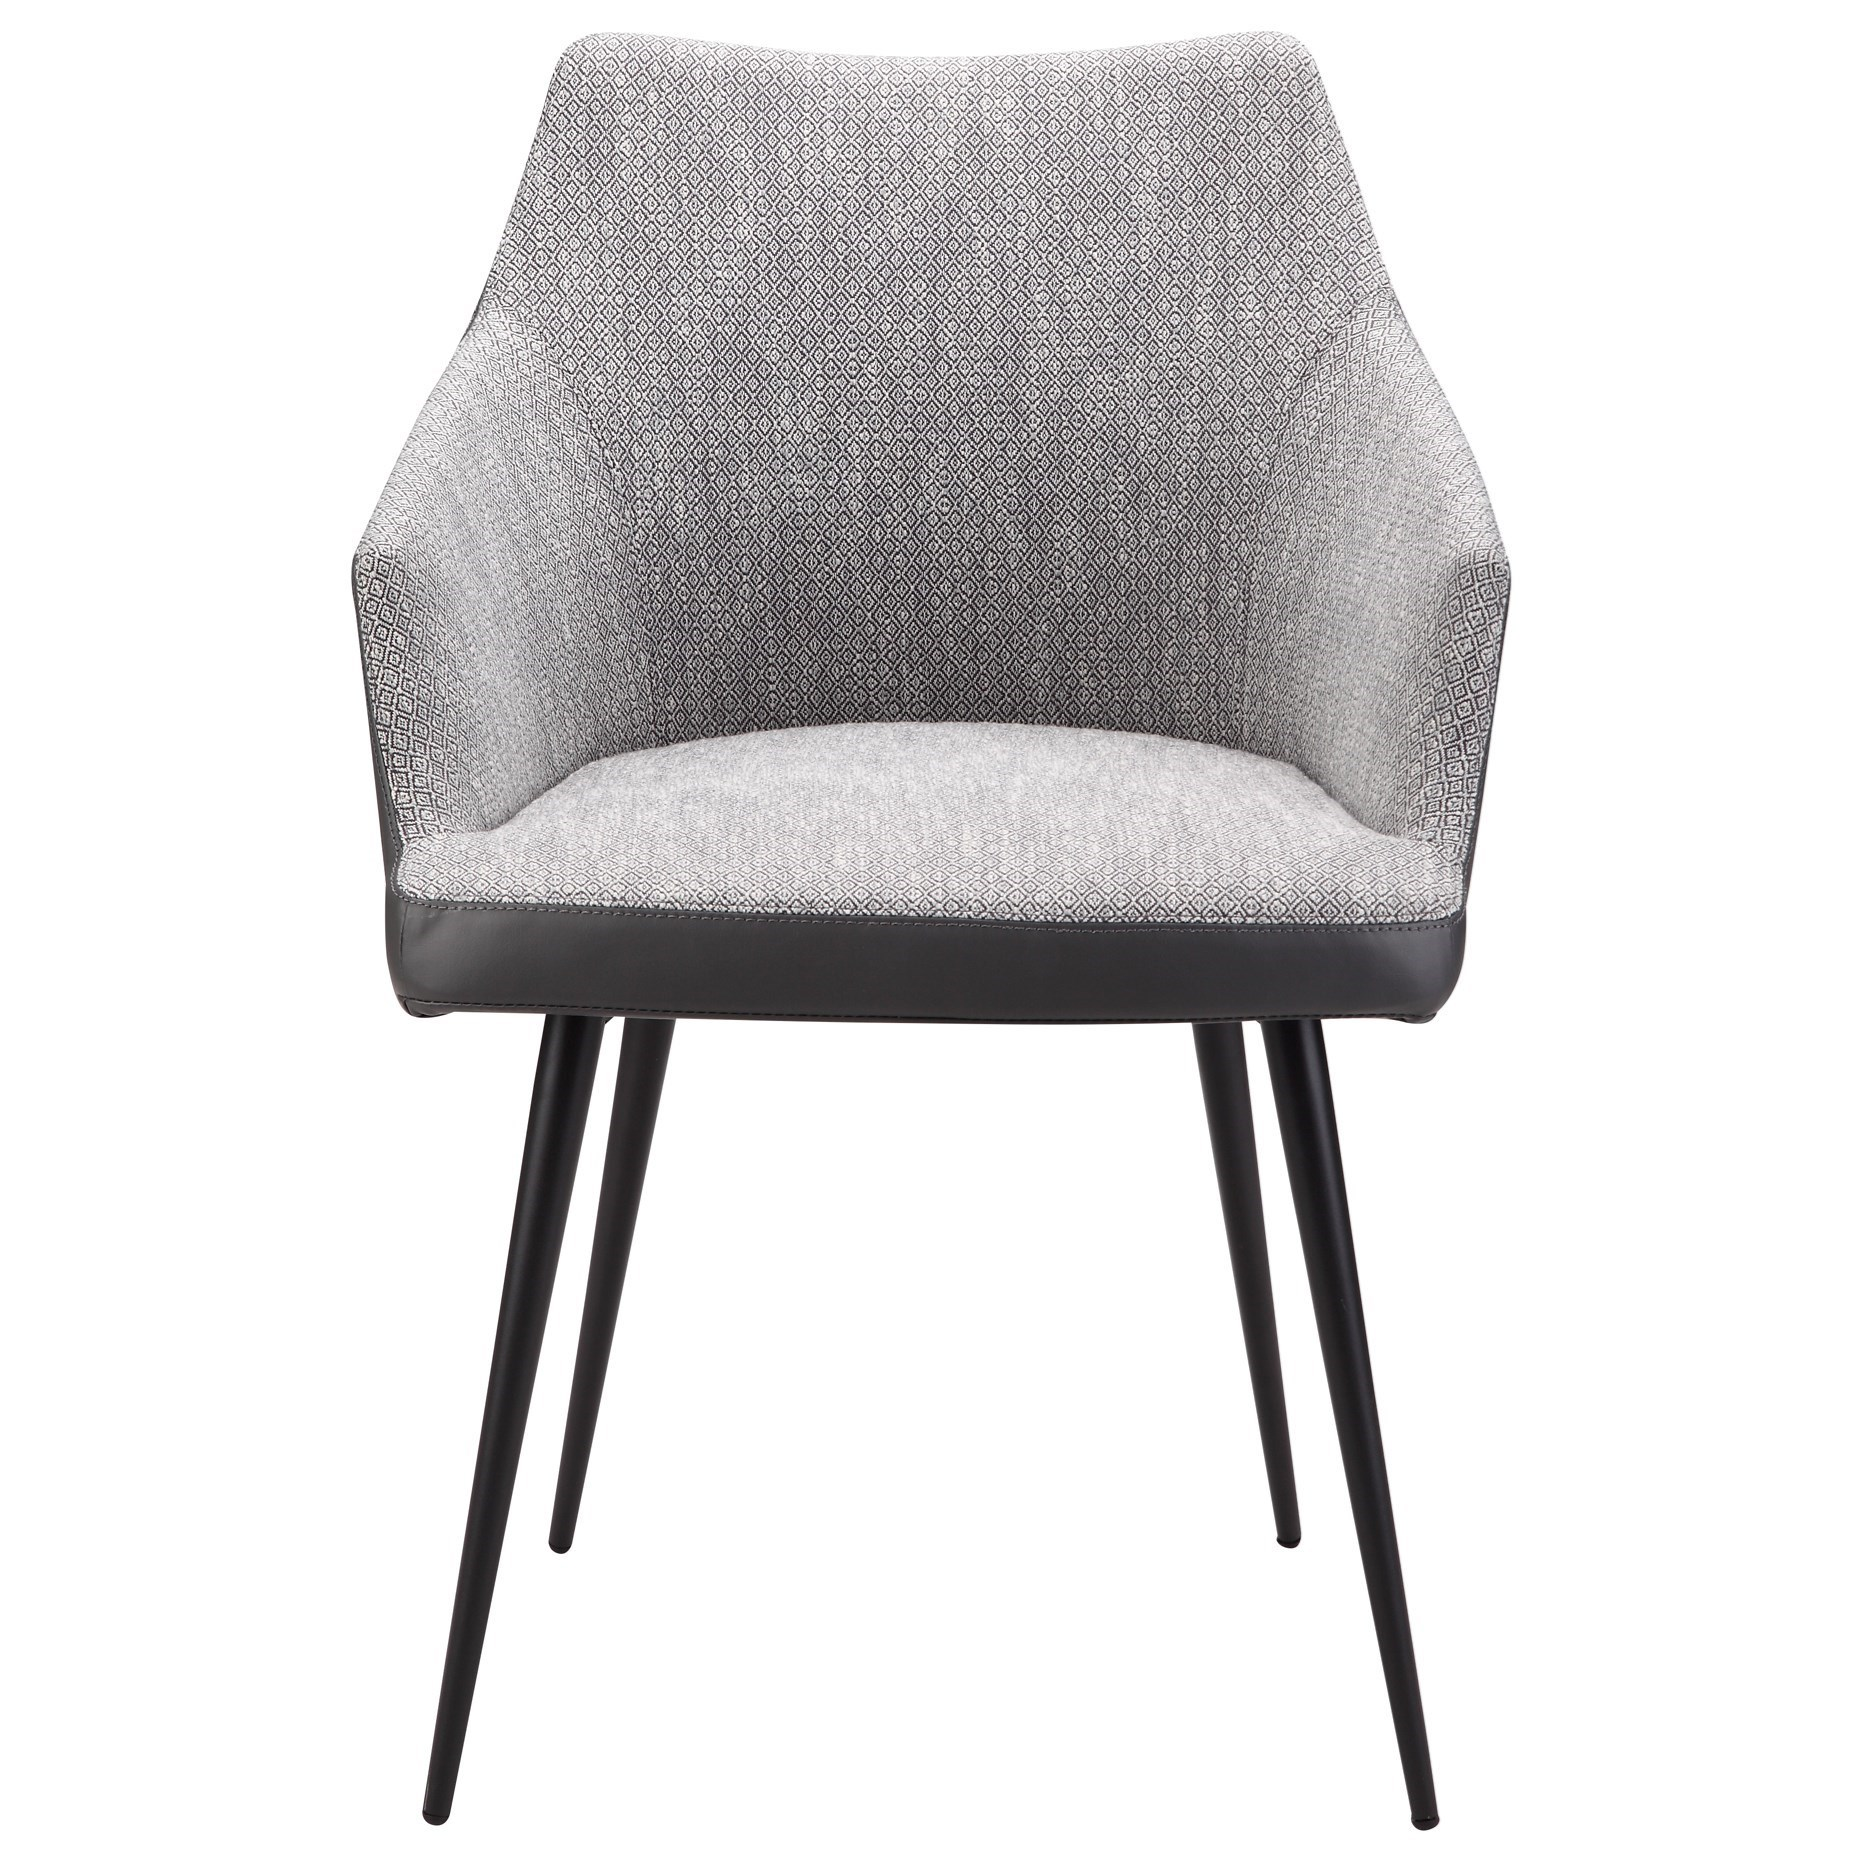 Beckett Dining Chair by Moe's Home Collection at Stoney Creek Furniture